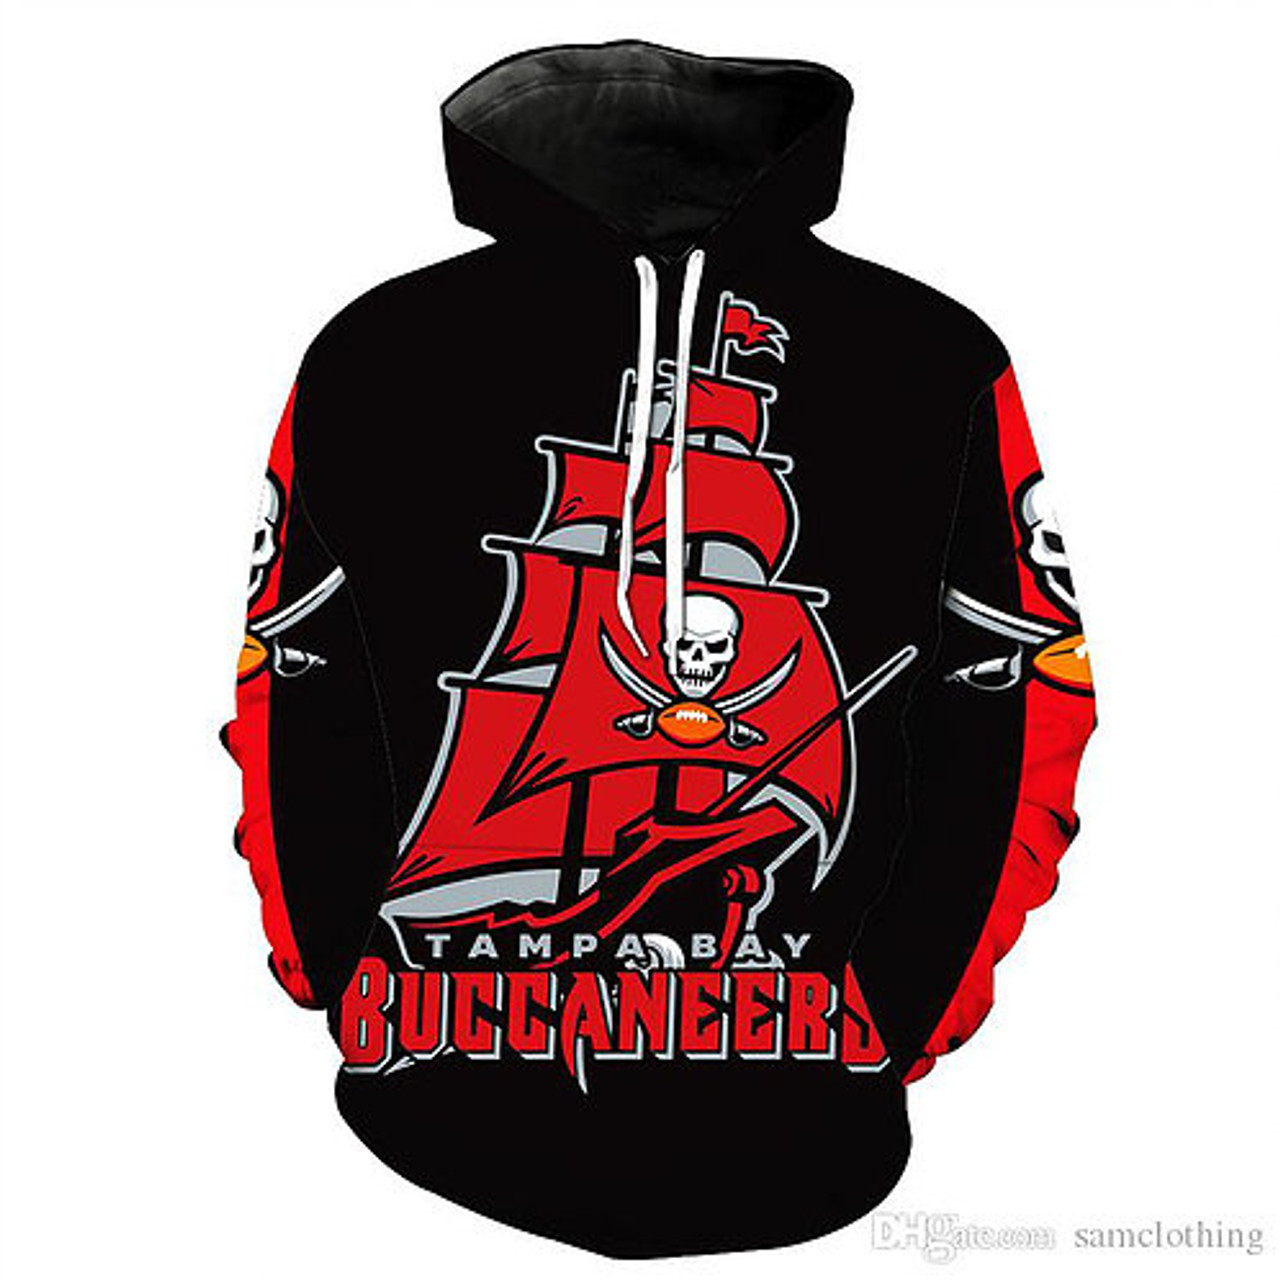 **(OFFICIALLY-LICENSED-N.F.L.TAMPA-BAY-BUCCANEERS-TEAM-PULLOVER-HOODIES/NEW-CUSTOM-3D-GRAPHIC-PRINTED-DOUBLE-SIDED-DESIGNED/ALL-OVER-OFFICIAL-BUCCANEERS-LOGOS & IN-BUCCANEERS-TEAM-COLORS/WARM-PREMIUM-OFFICIAL-N.F.L.BUCCANEERS-TEAM/PULLOVER-POCKET-HOODIES)**